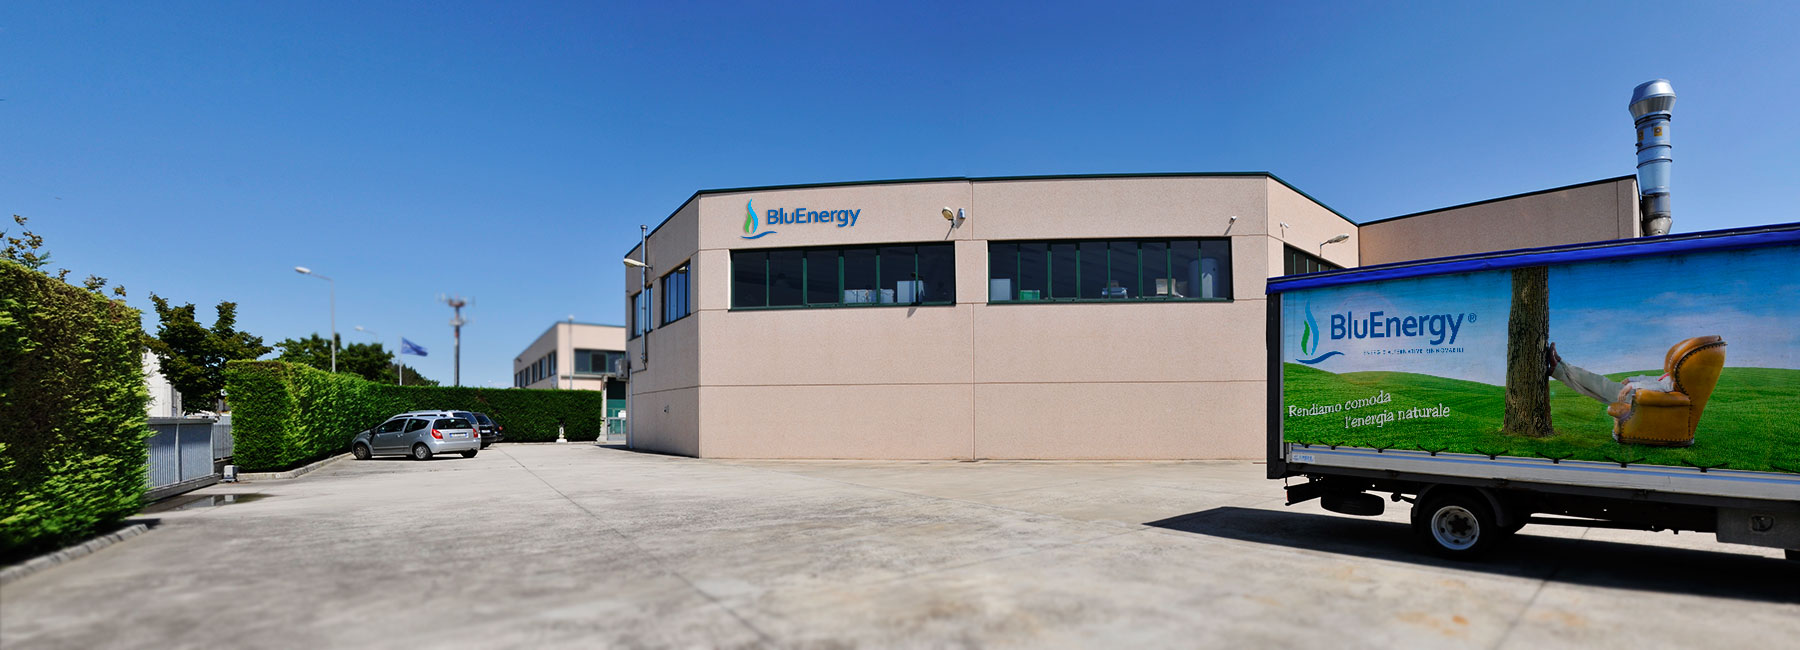 Bluenergy-company-srl-energy-alternative-renewable-padova